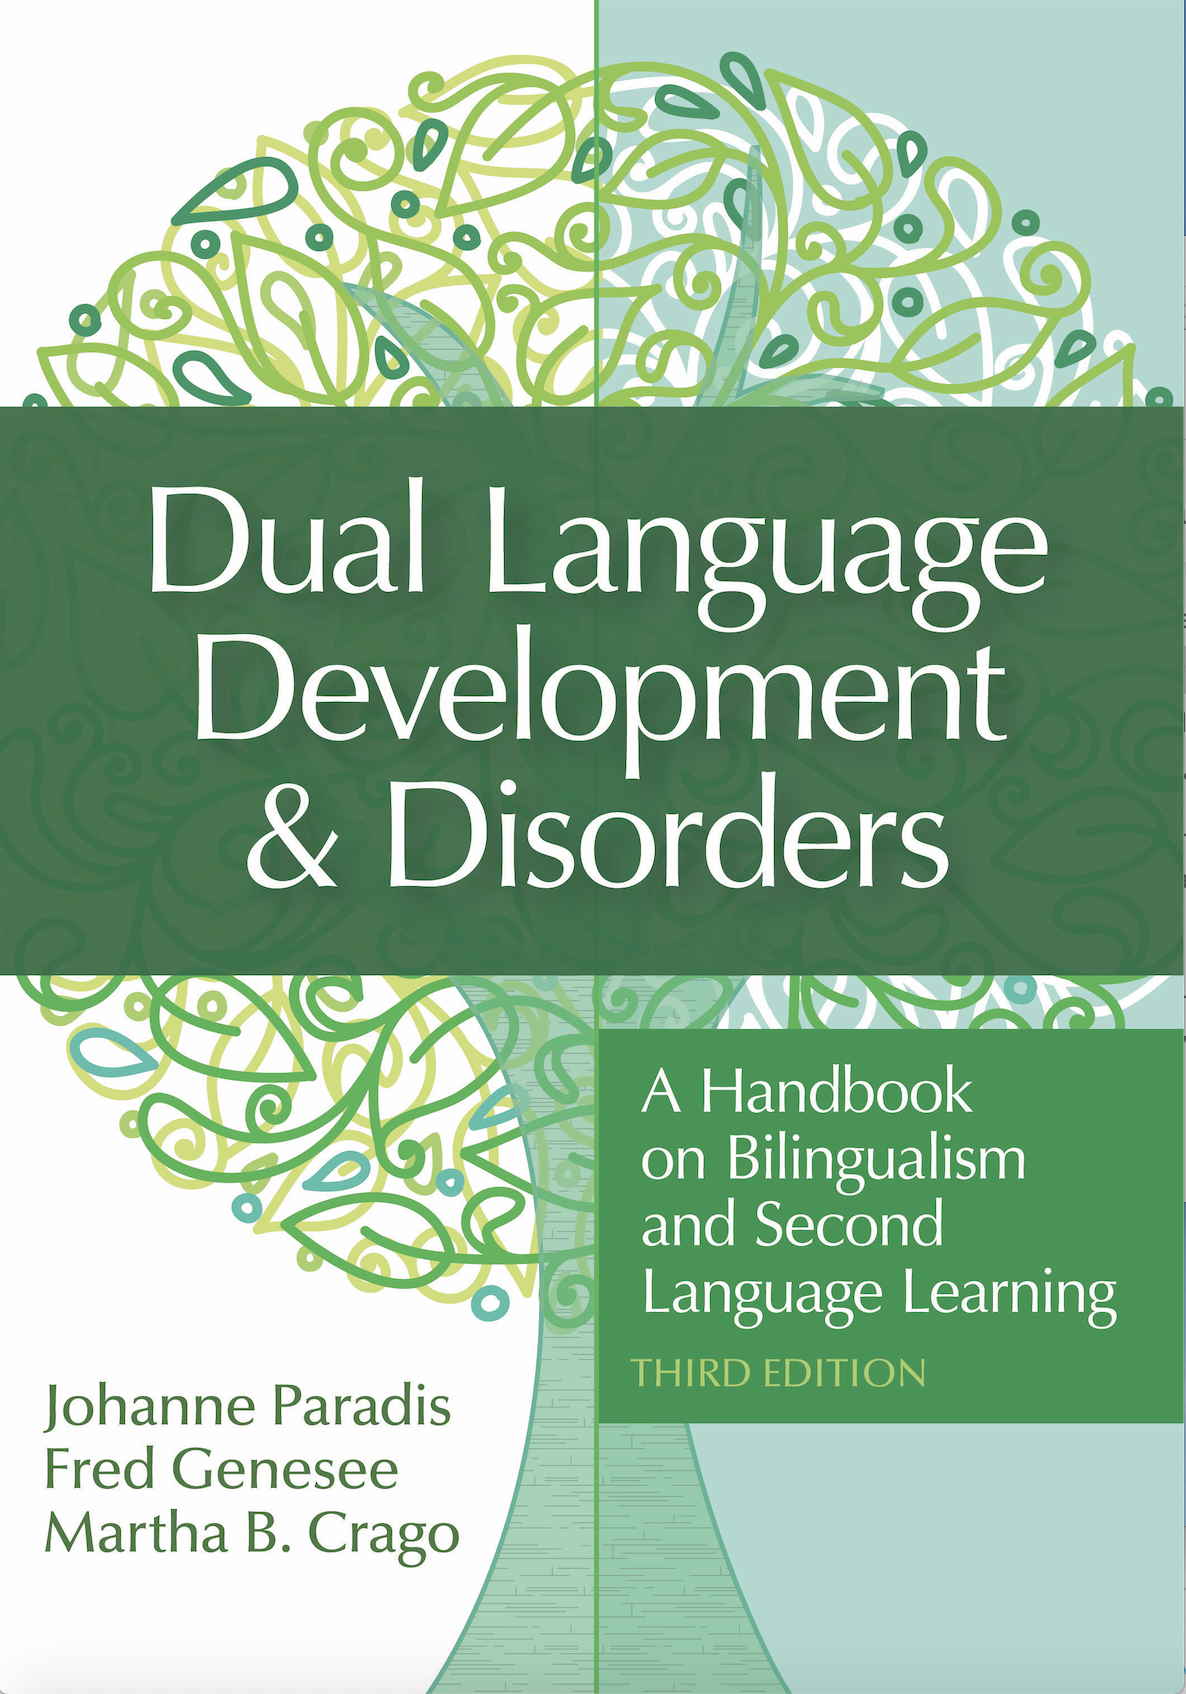 Dual Language Development & Disorders: A Handbook on Bilingualism and Second Language Learning, 3rd Edition